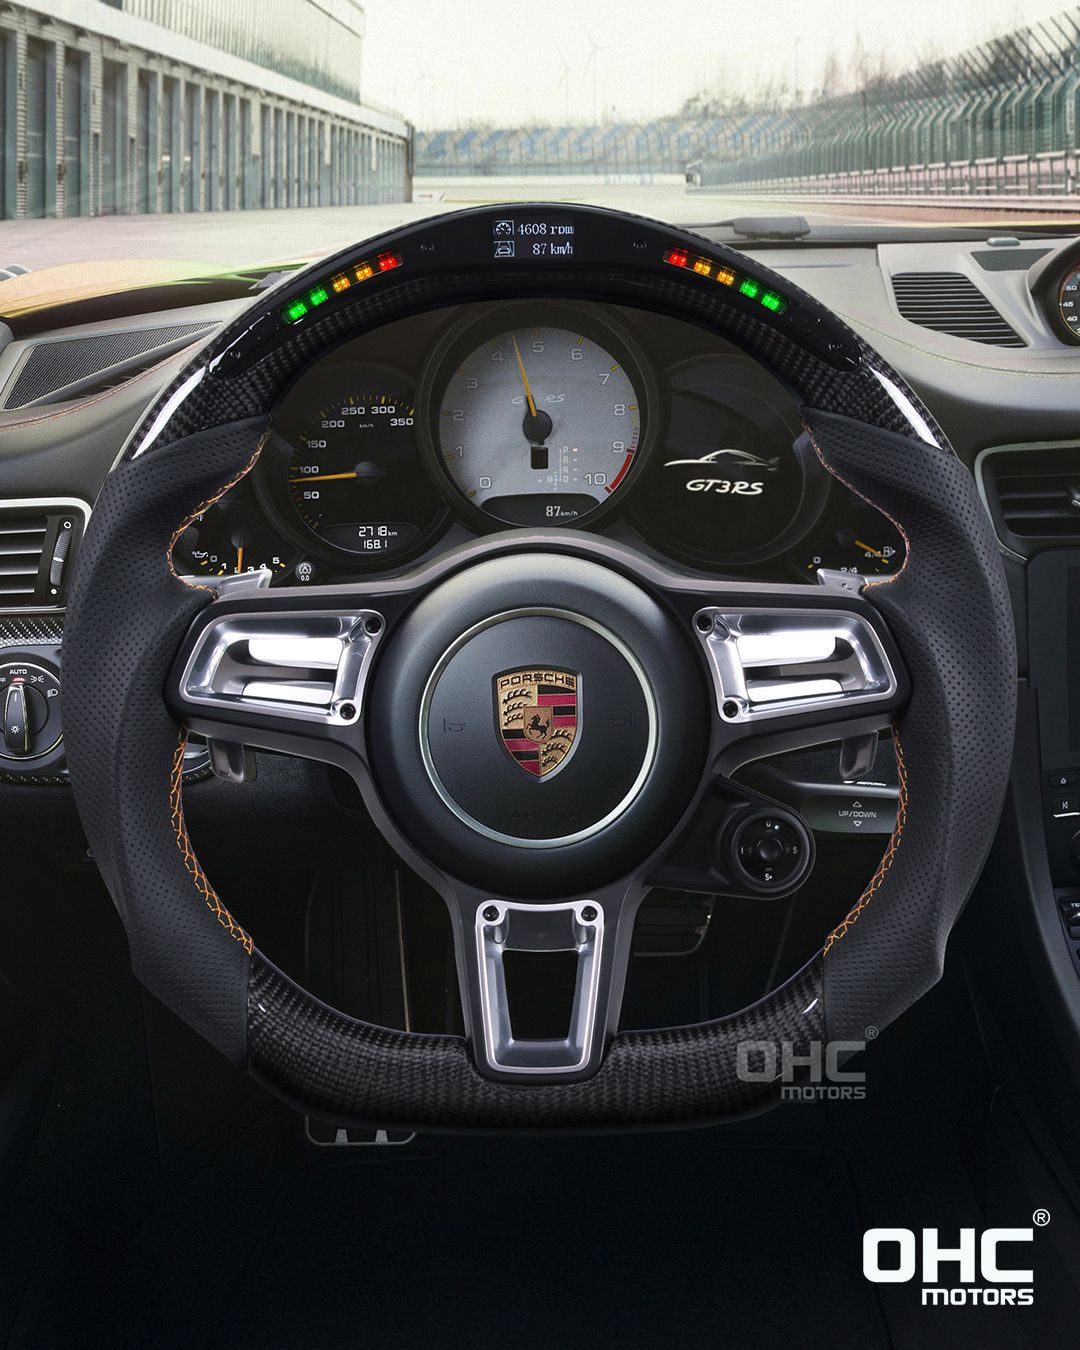 Led Performance Steering Wheel For Porsche The Advanced Function 1 Rpm Indicating Lights 2 Driving Speed Data Steering Wheel Wheel Super Luxury Cars